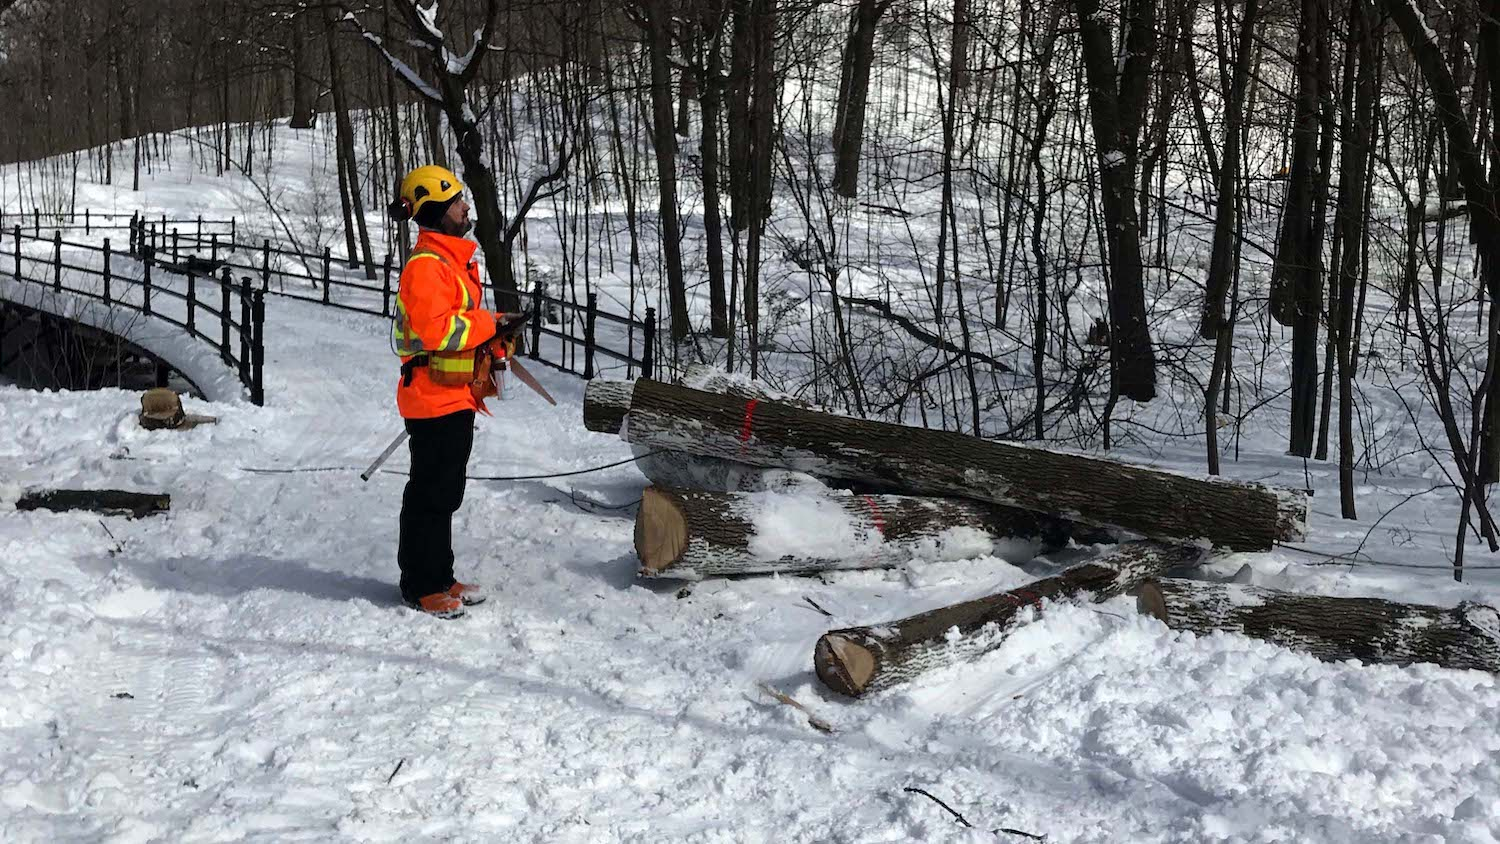 Daniel Pilote tracks the health of ash trees in Montreal using an Arrow 100 GNSS receiver with ArcGIS Collector on iPad to track the spread of an invasive species